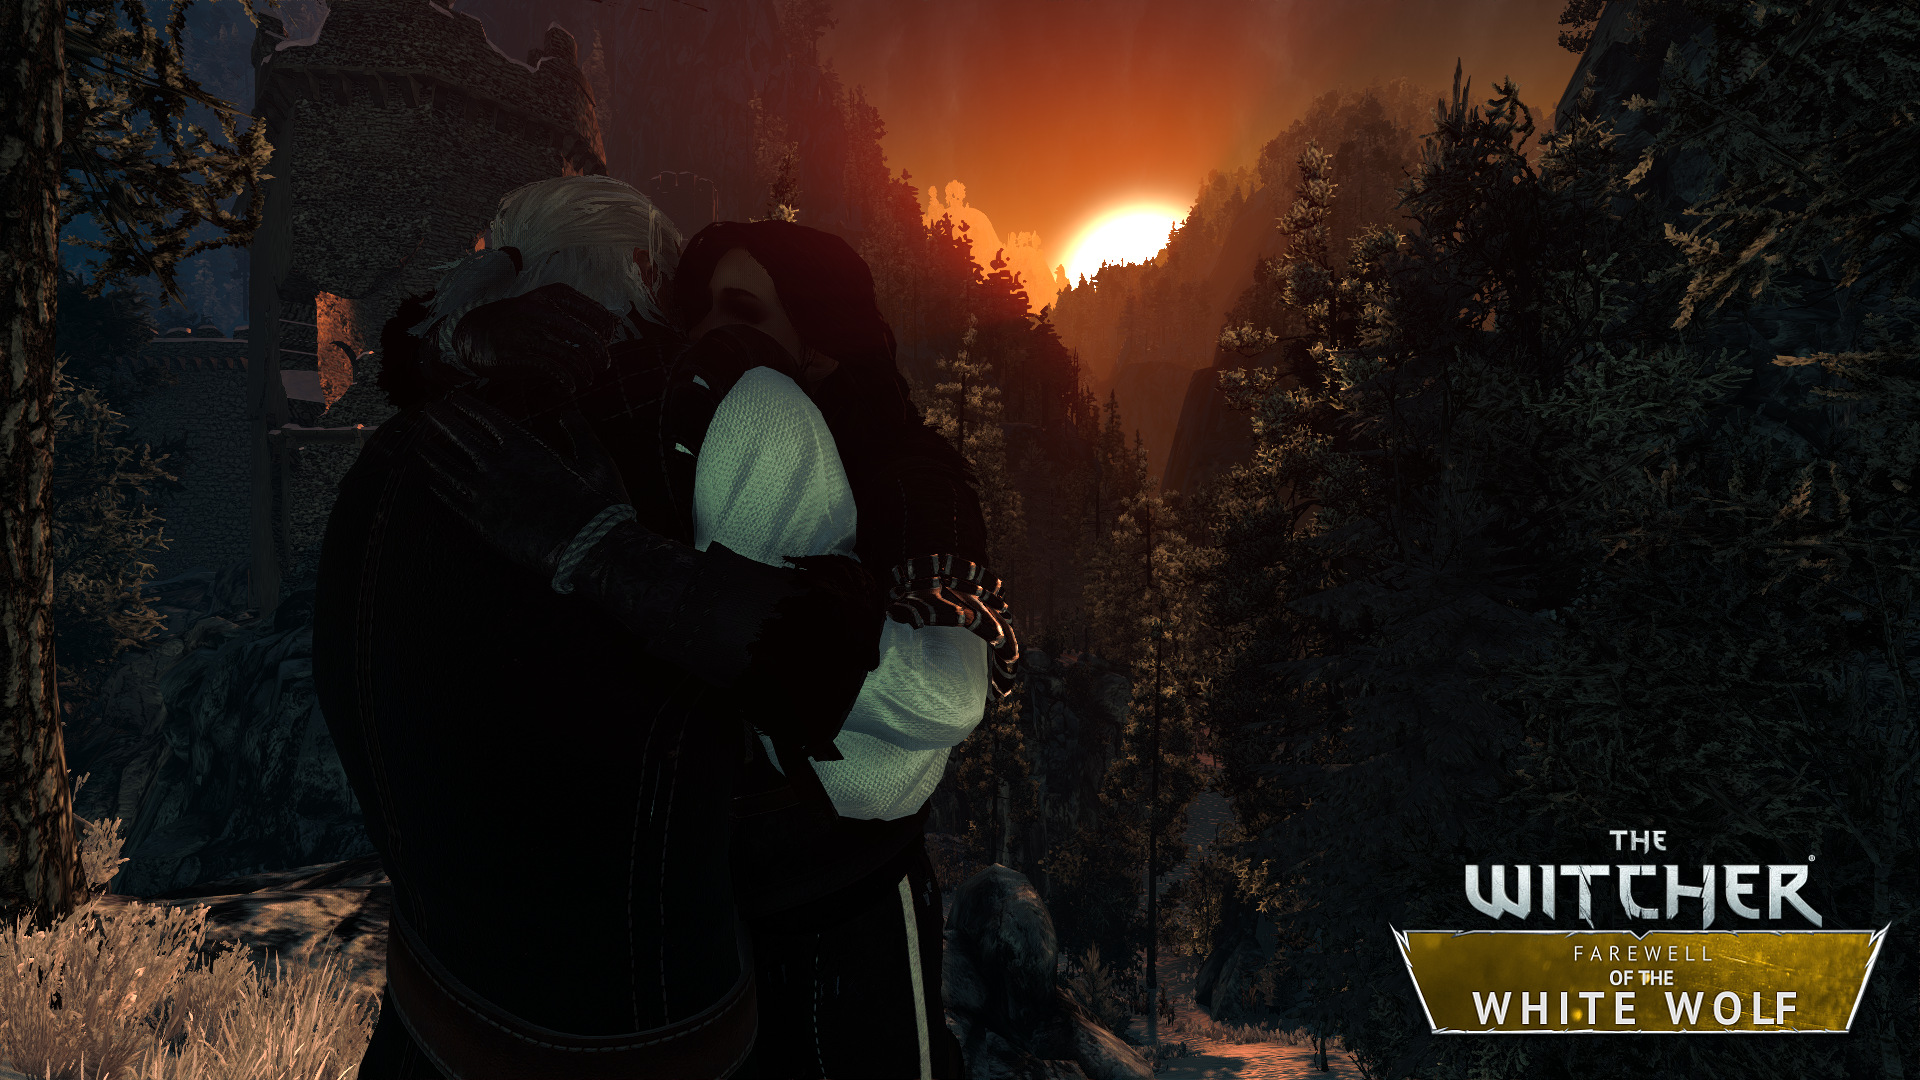 witcher-farewell-of-the-whitewolf-006